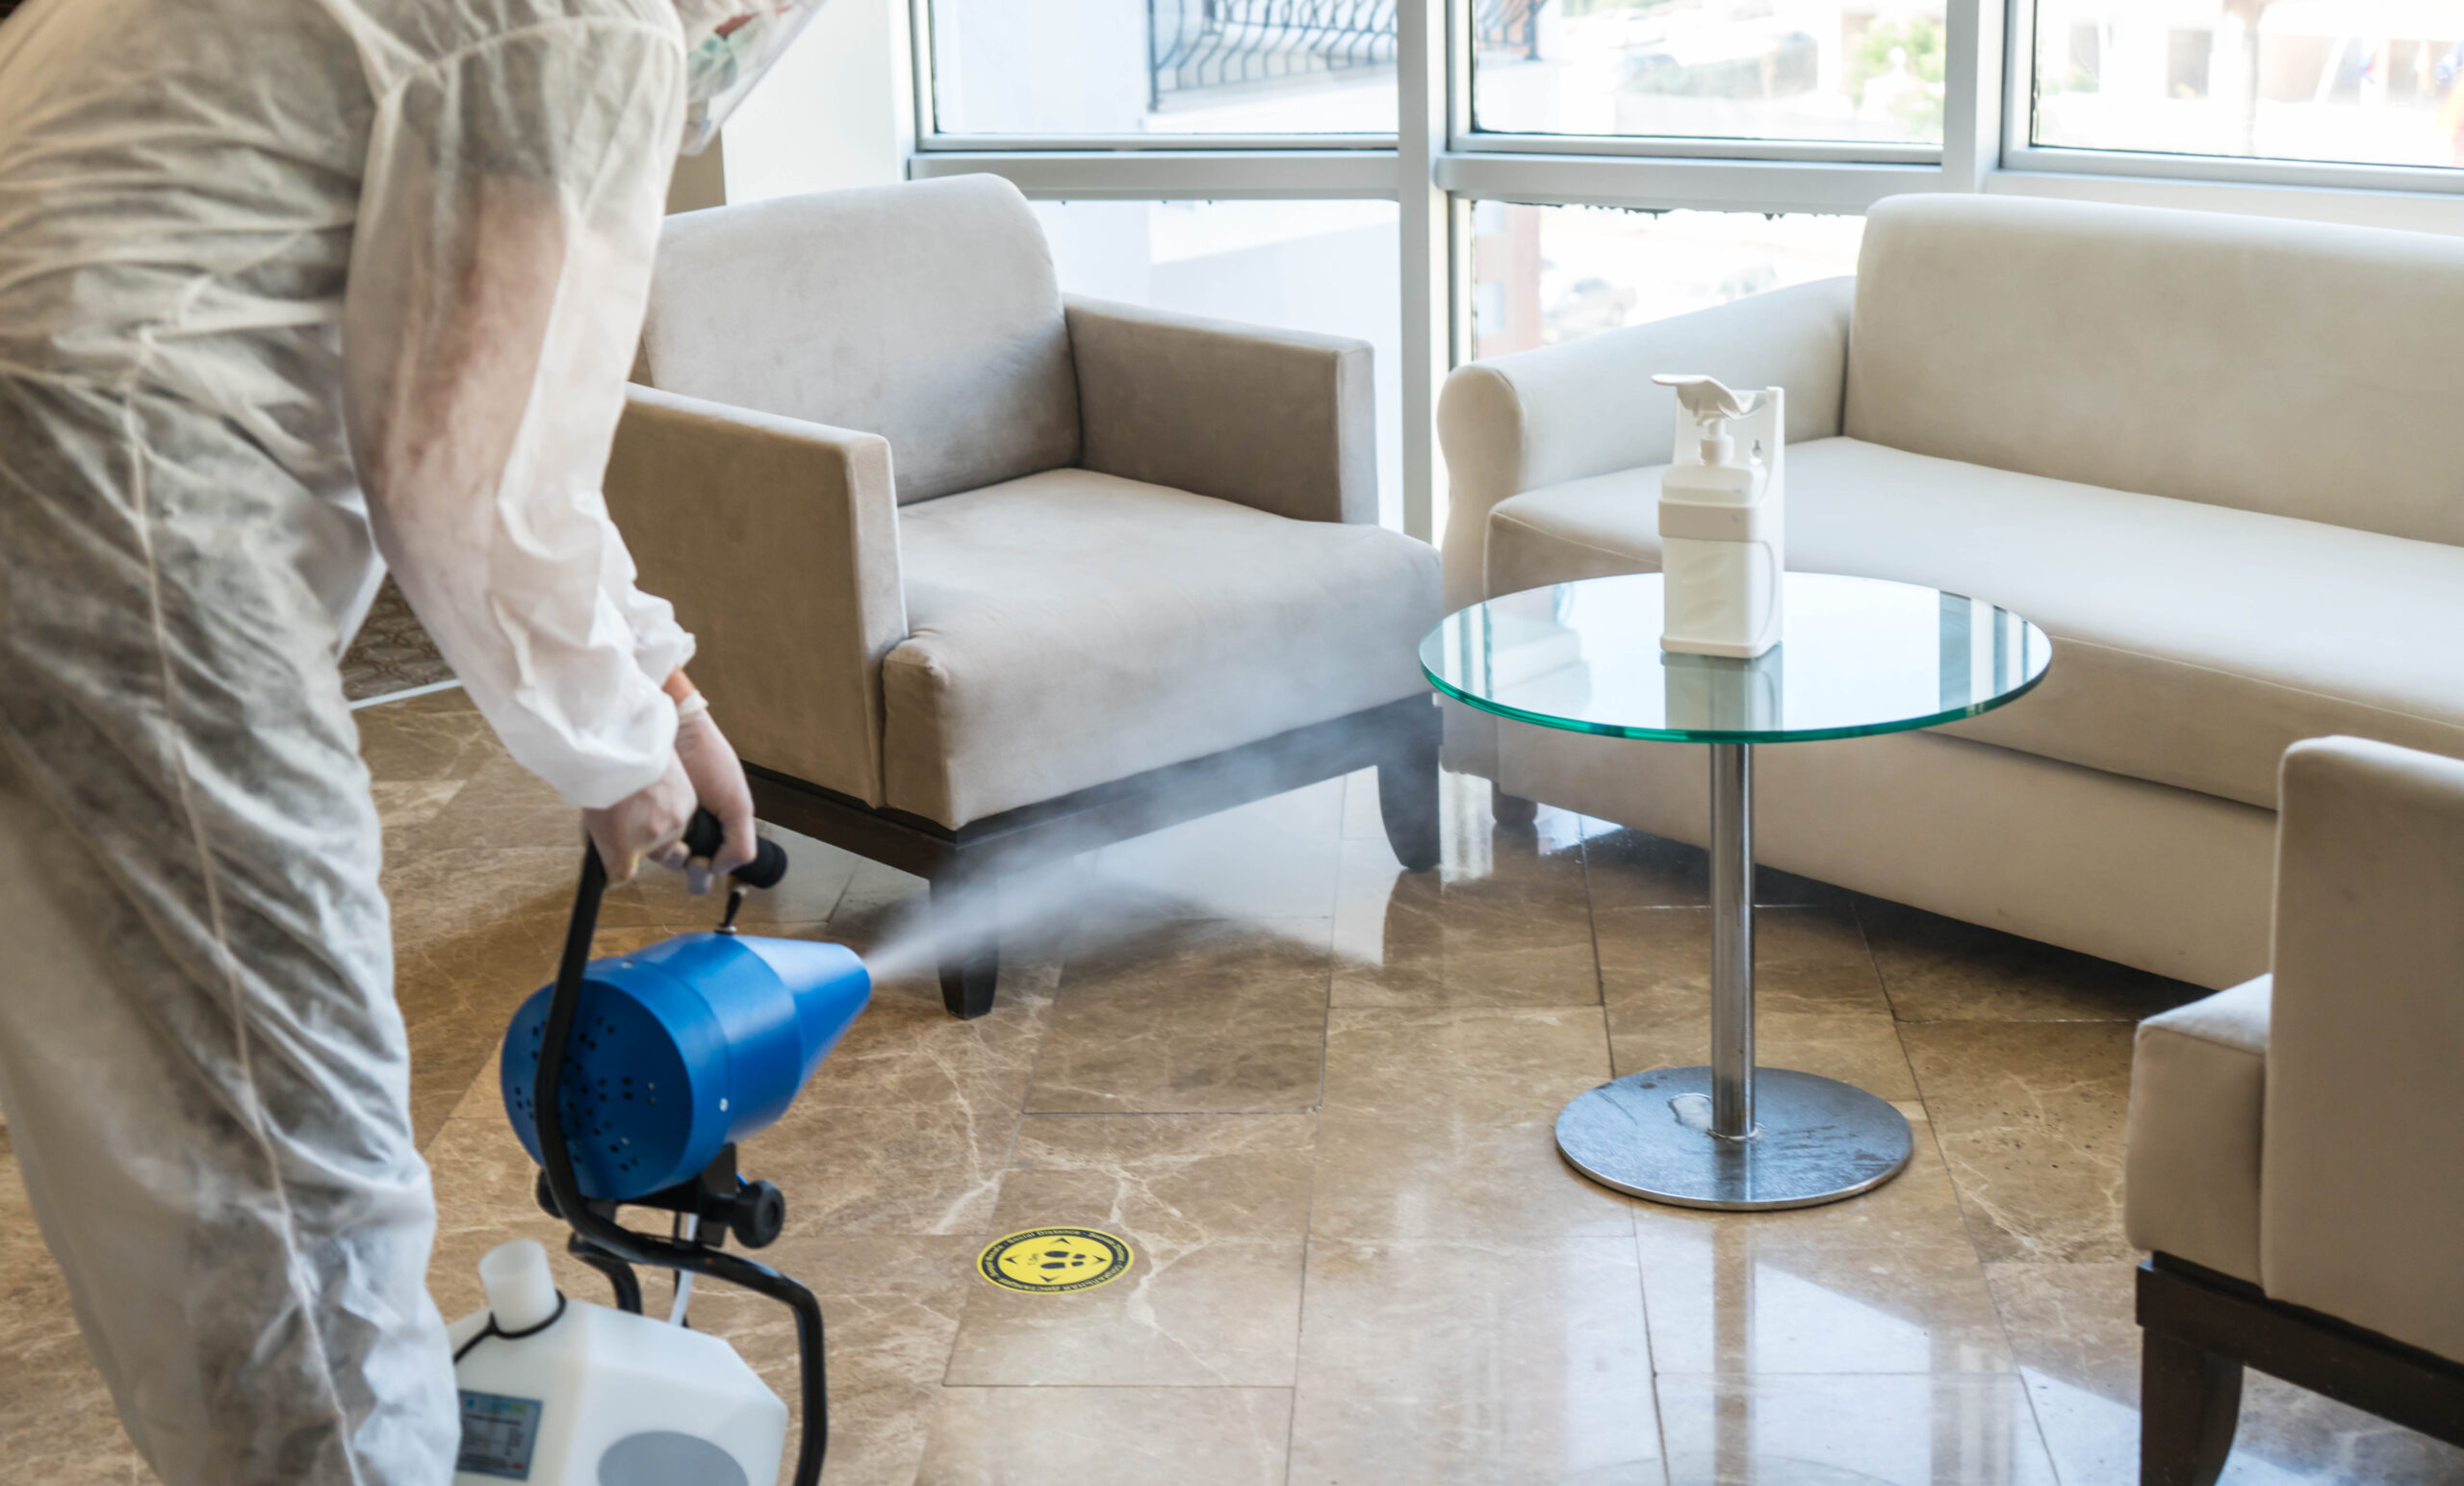 Janitorial a Choosing MC to While Things Look Commercial Service for - Cleaning